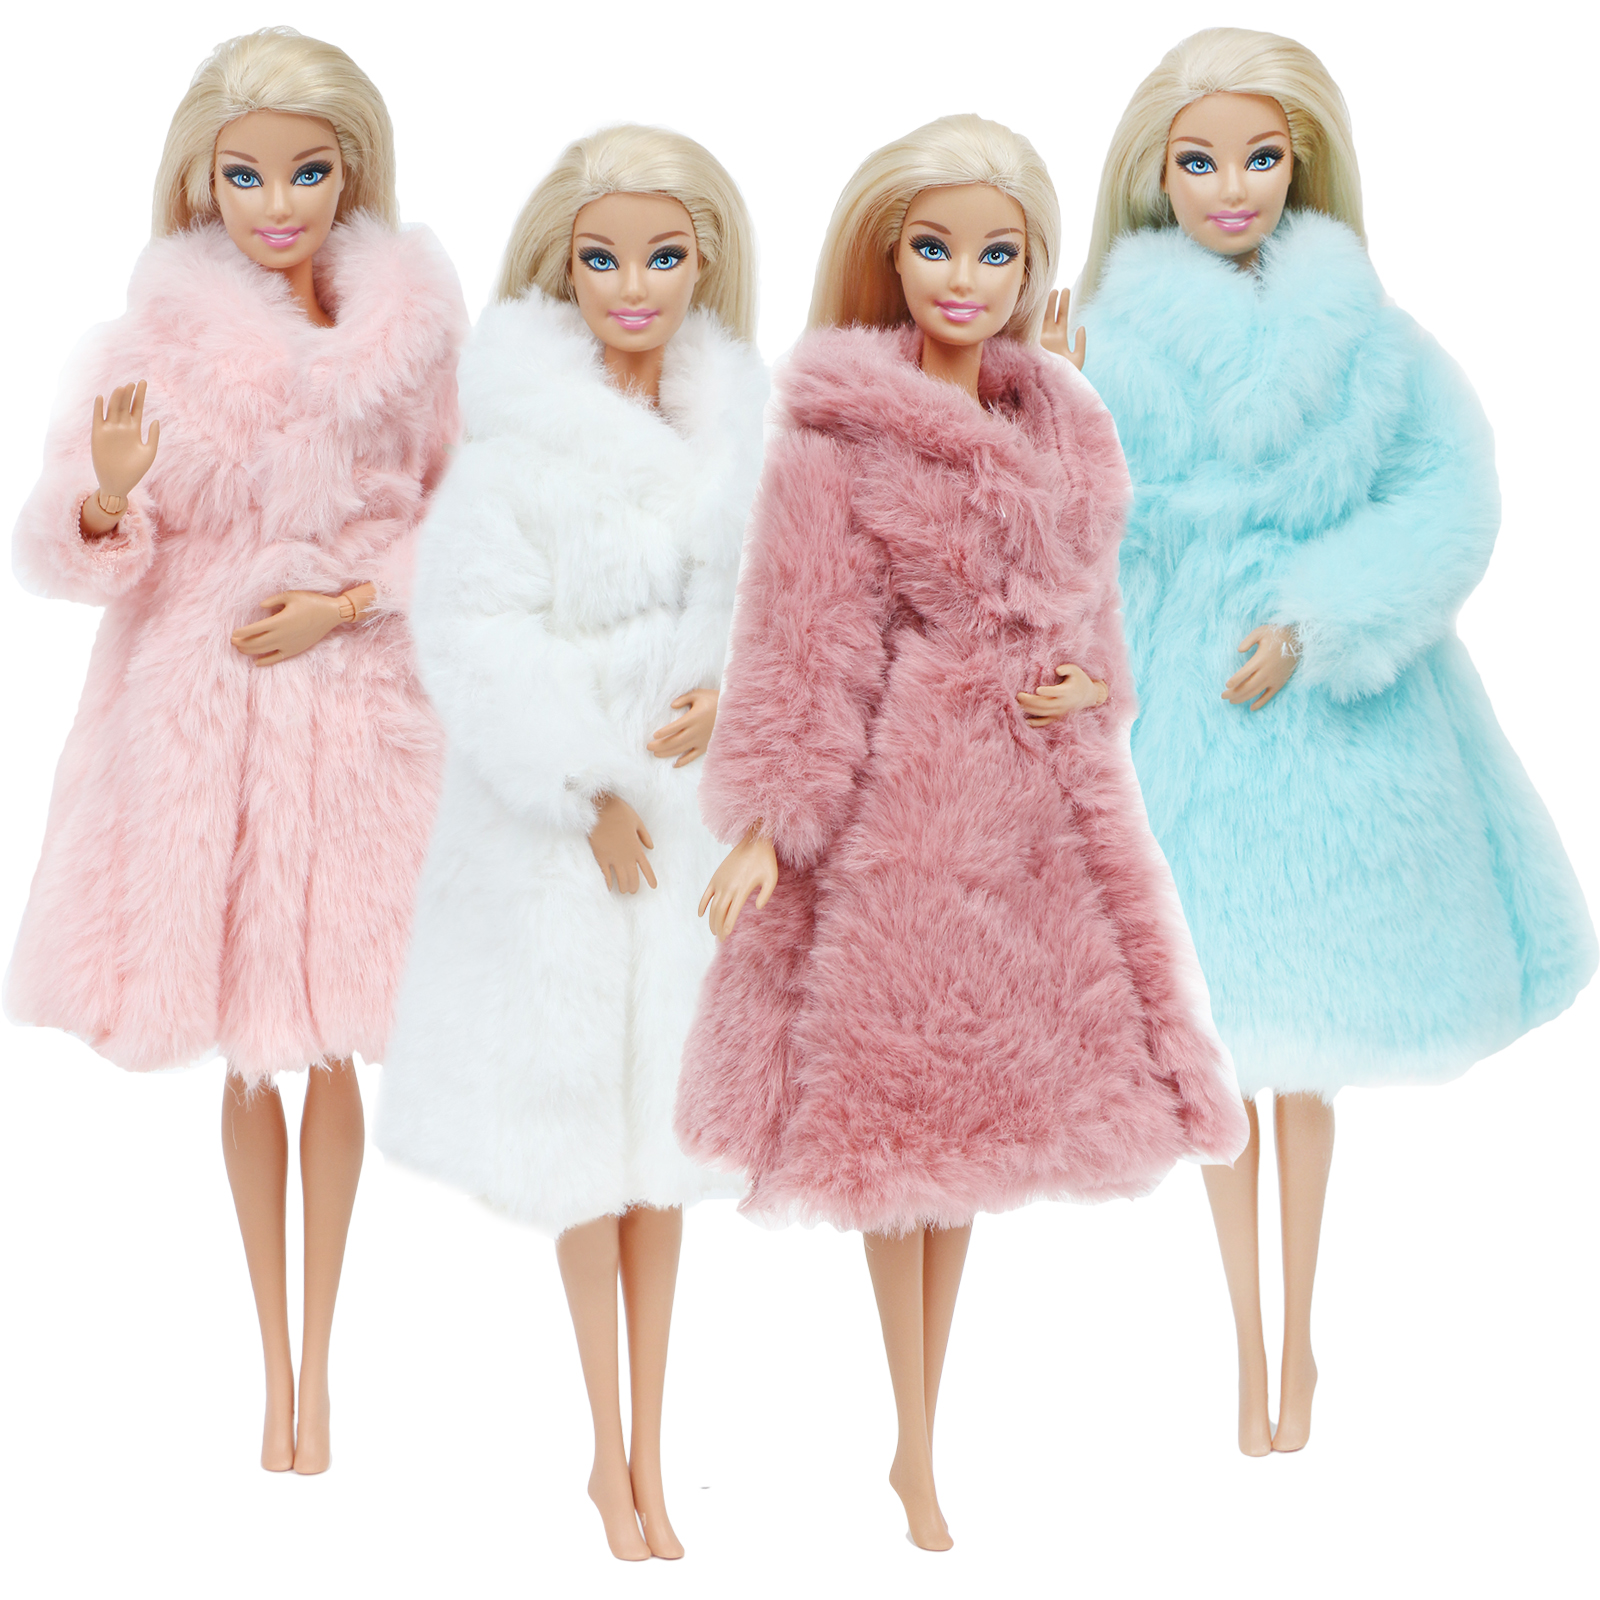 Mix Doll Coat Winter Flannel Coat Furry Robe Dress Clothes For Barbie Doll Toy 12 Inch. Accessories Lot Color Outfit